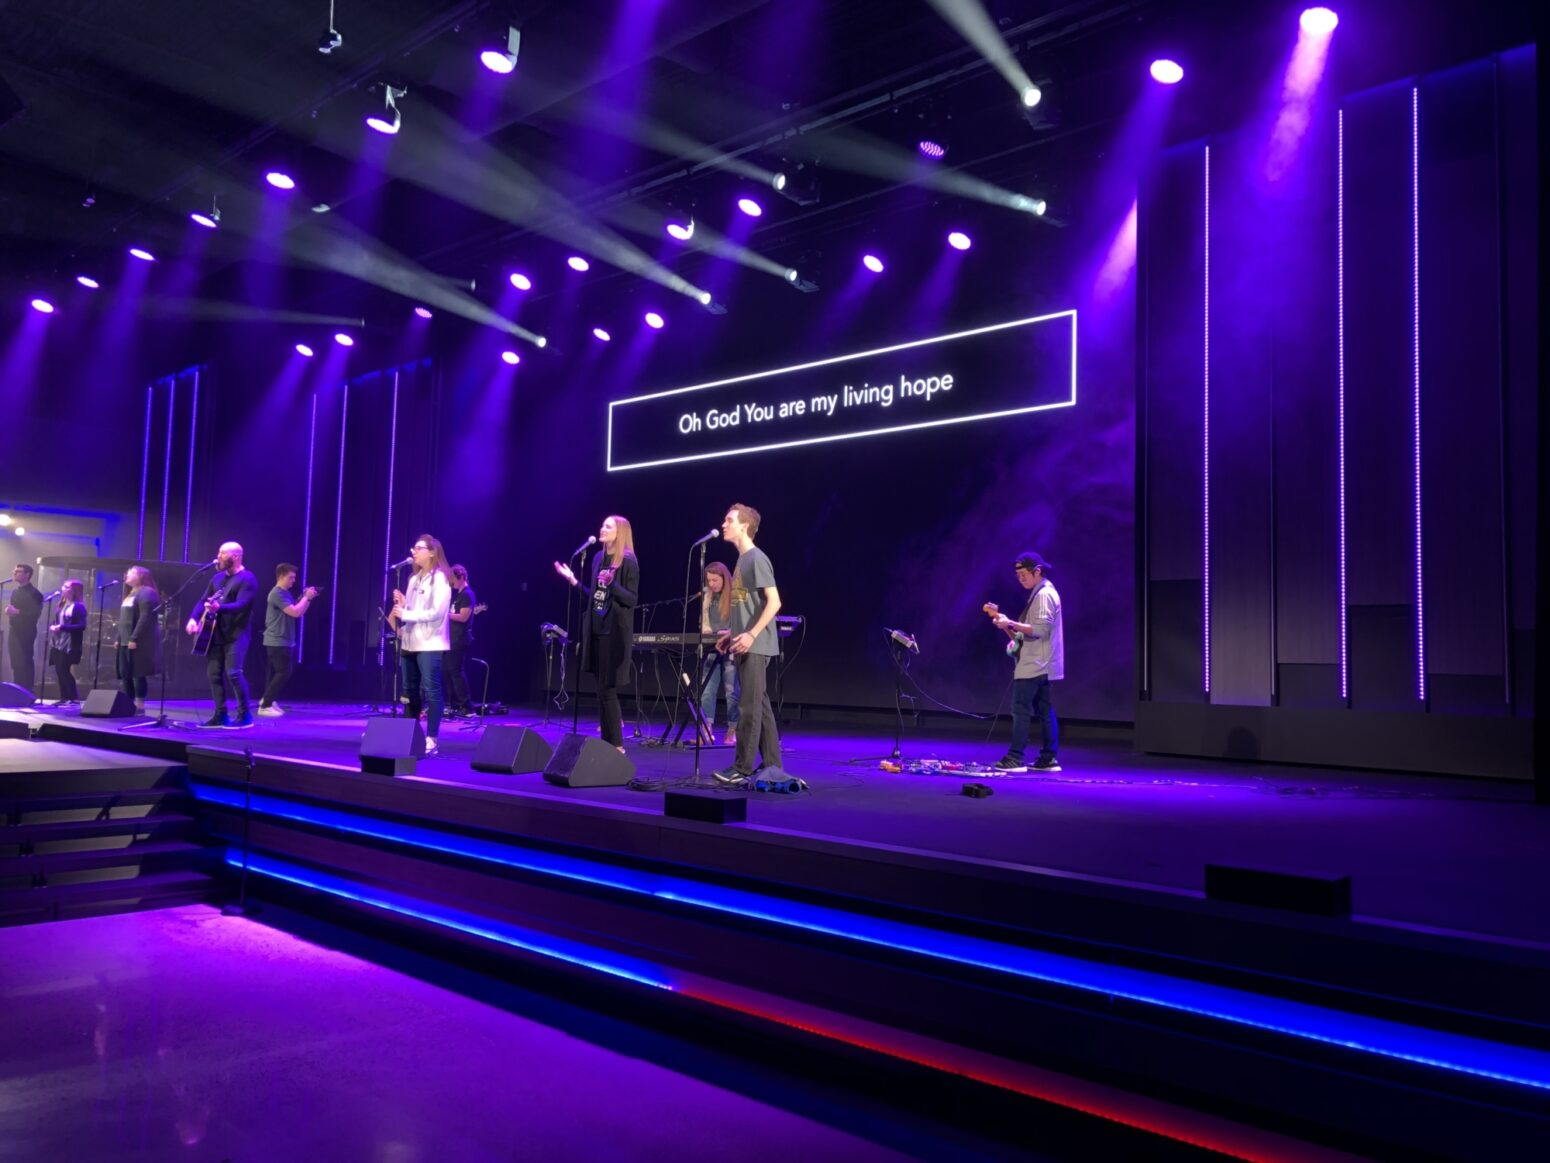 This church stage lighting system delivers the Word.